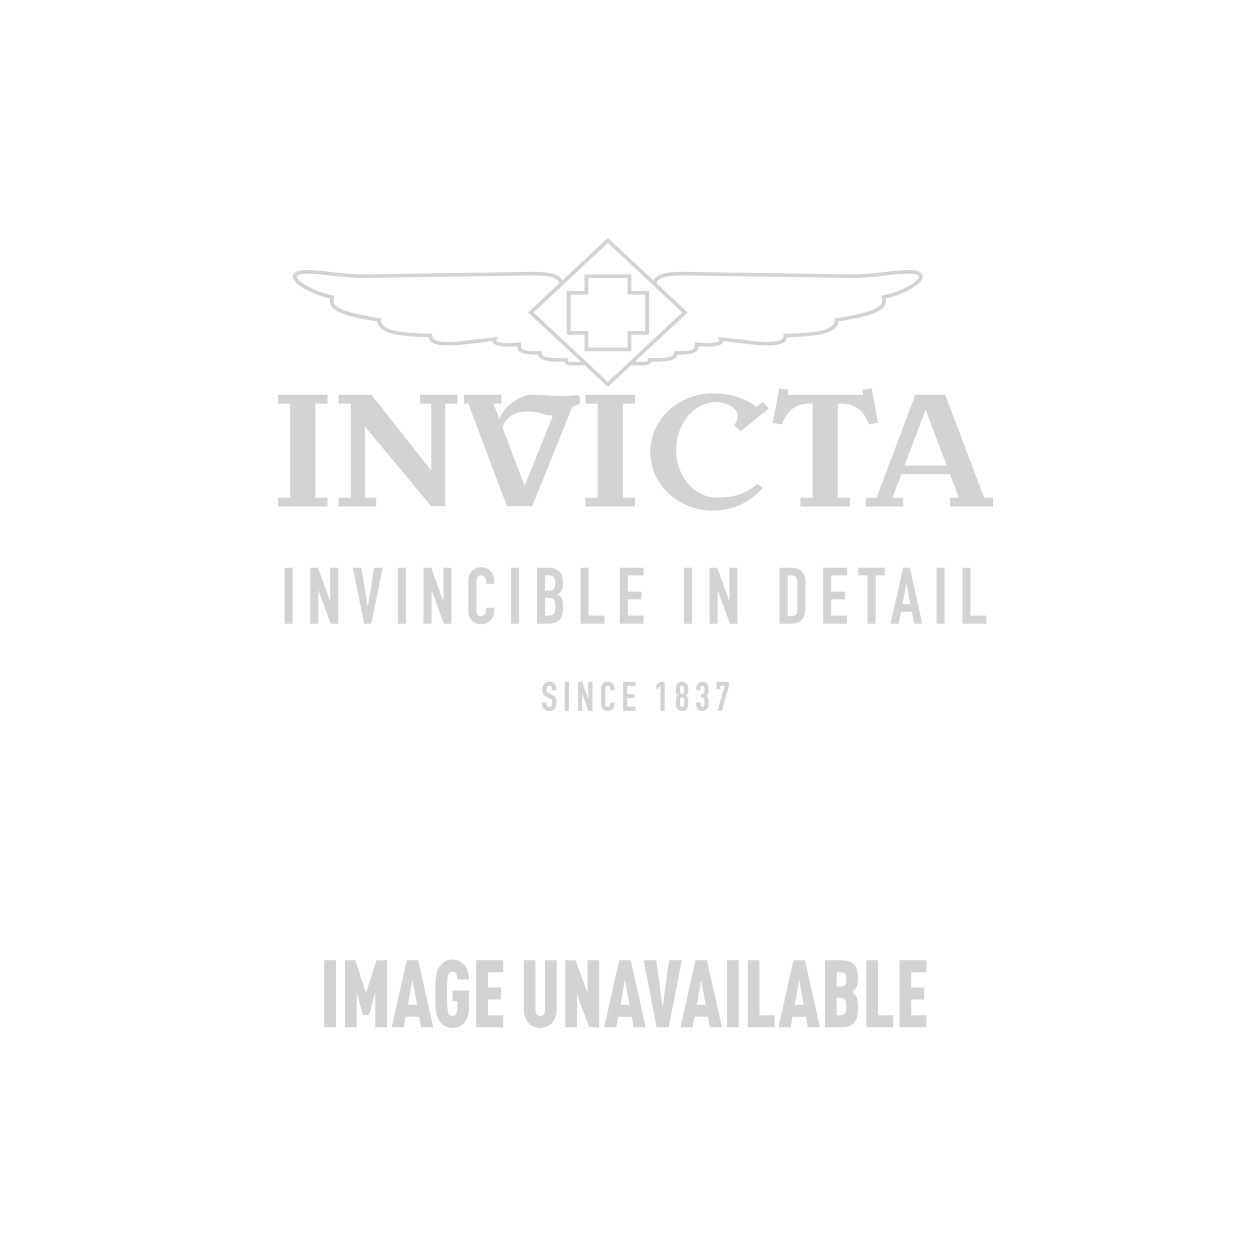 Invicta Aviator Swiss Movement Quartz Watch - Stainless Steel case with Black tone Leather band - Model 12314